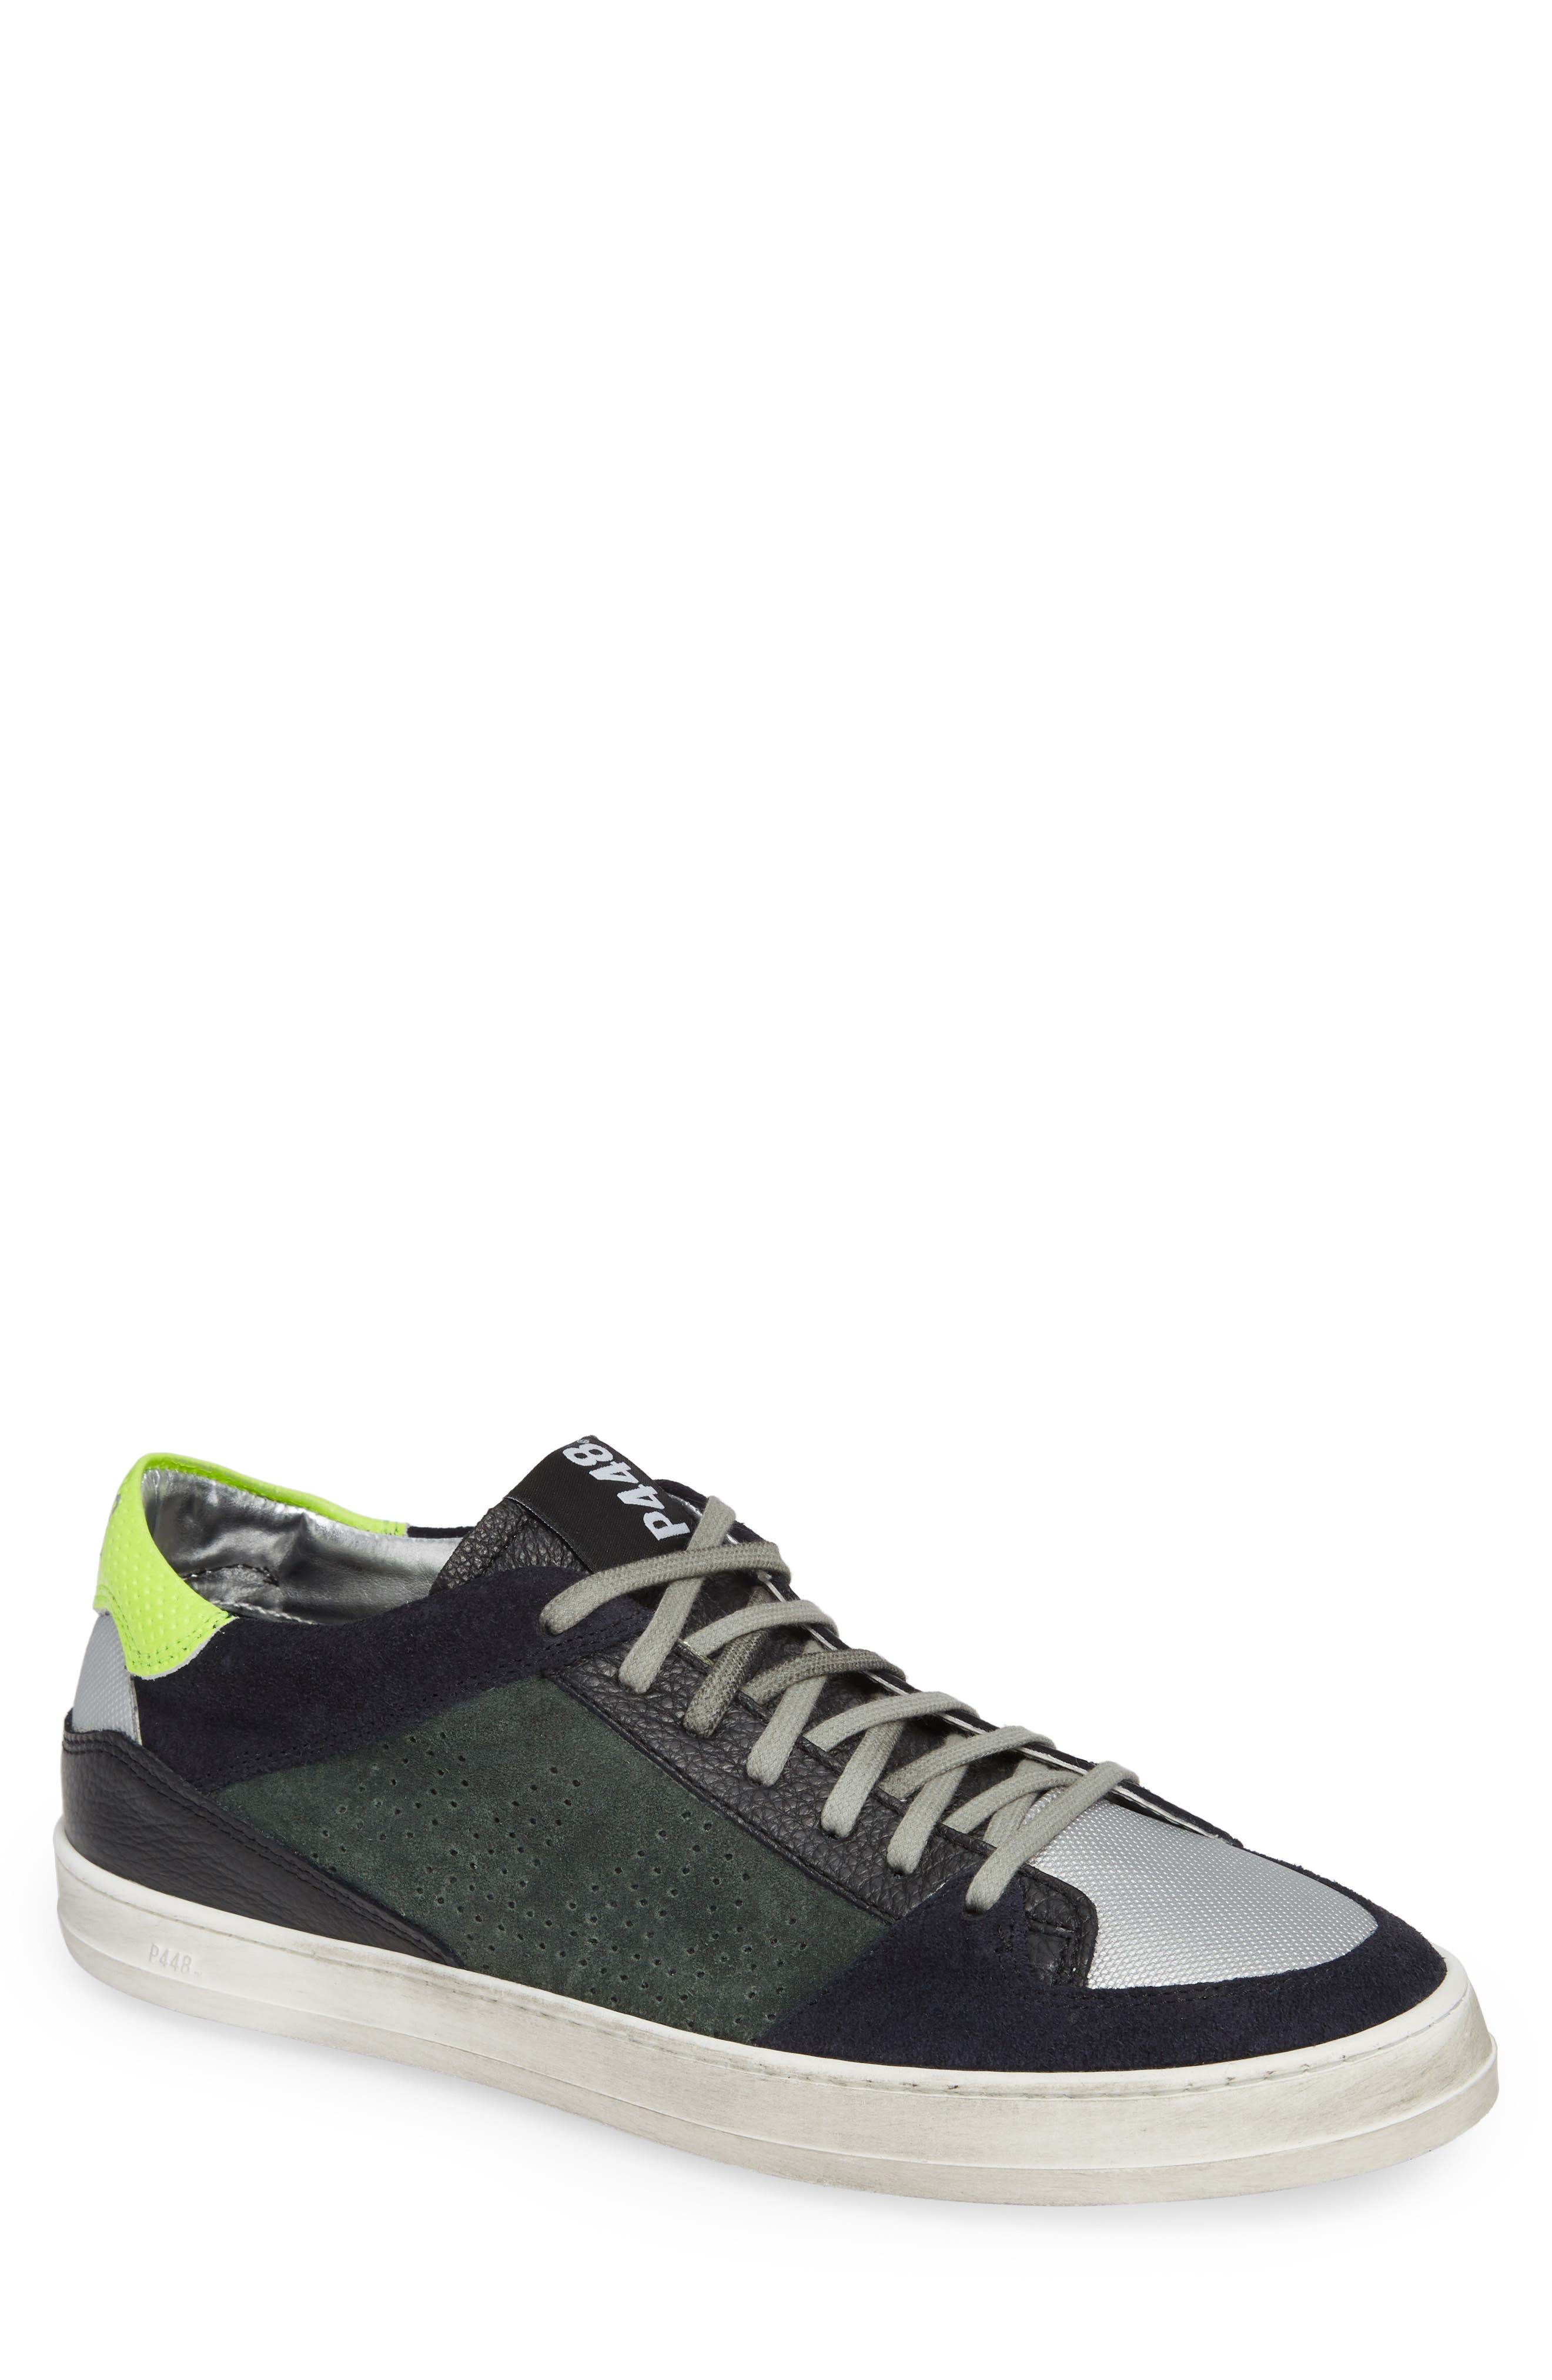 A8Queens Sneaker,                             Main thumbnail 1, color,                             WILLOW GREEN